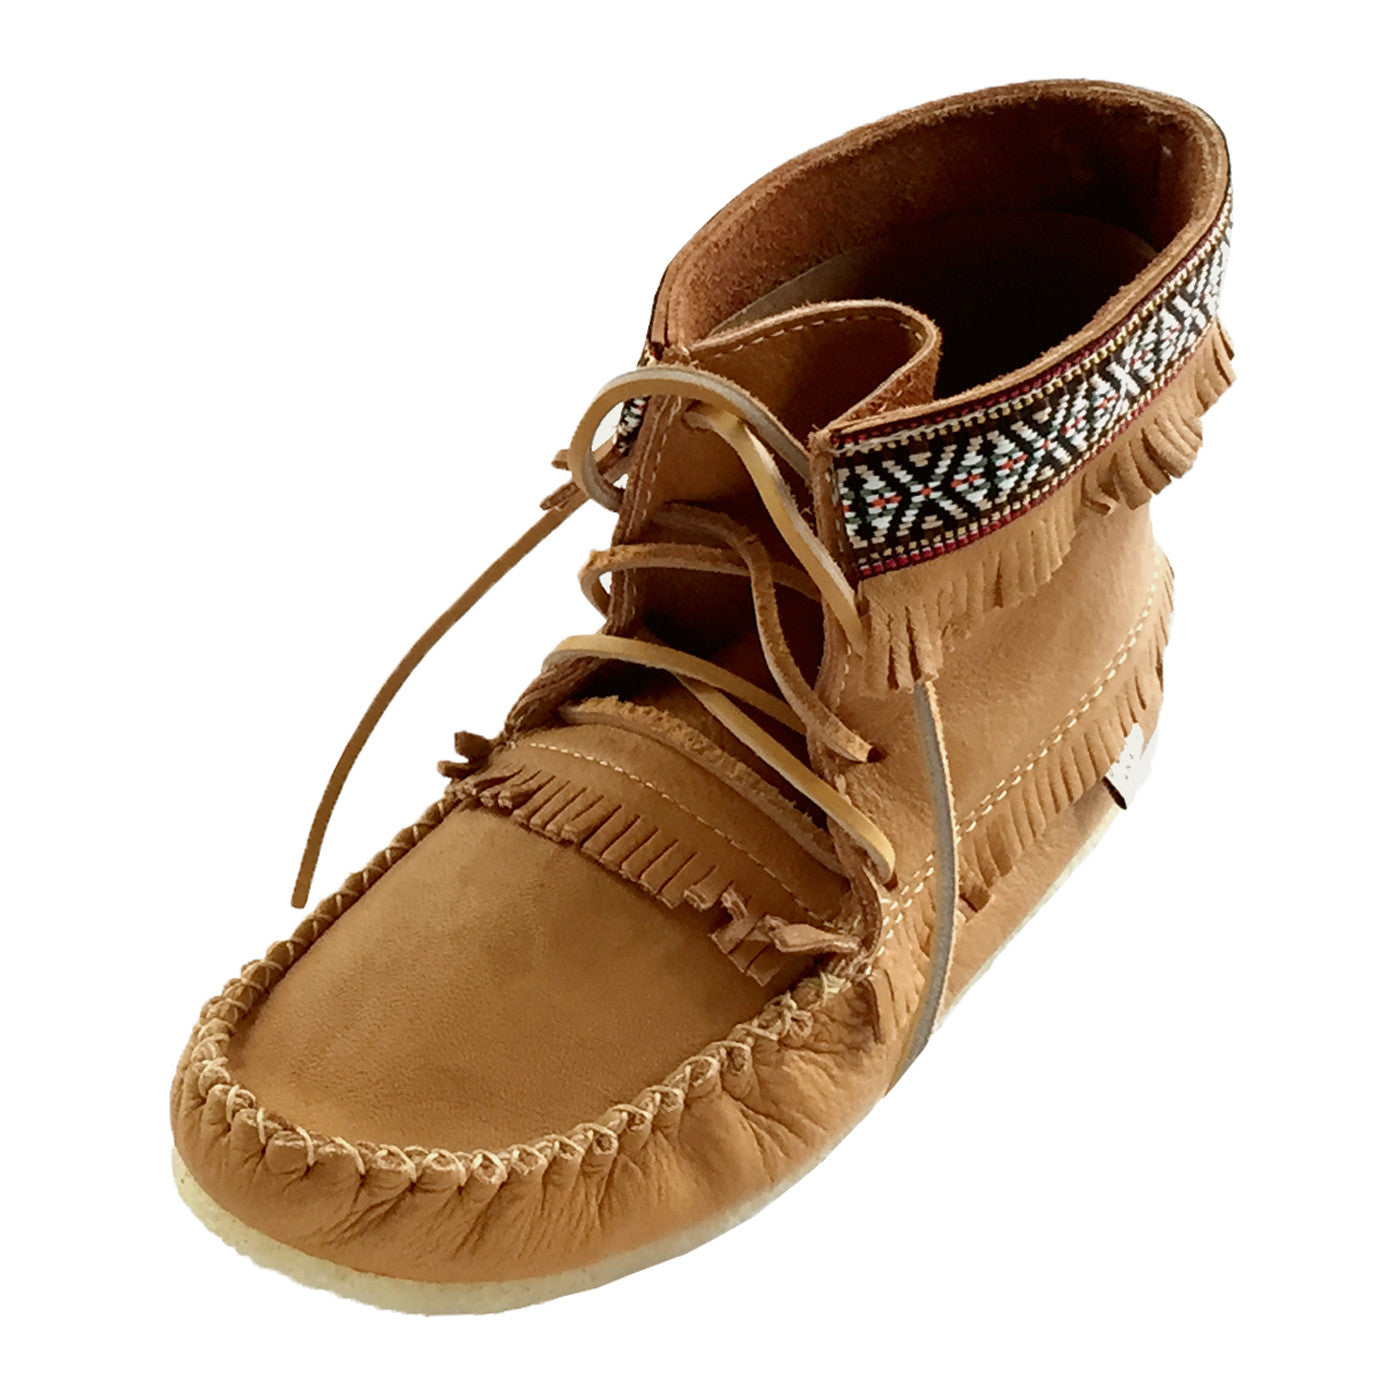 moccasin buddhist single men Our network of single men and women in moccasin is the perfect place to make friends or find a boyfriend or girlfriend in moccasin buddhist singles.